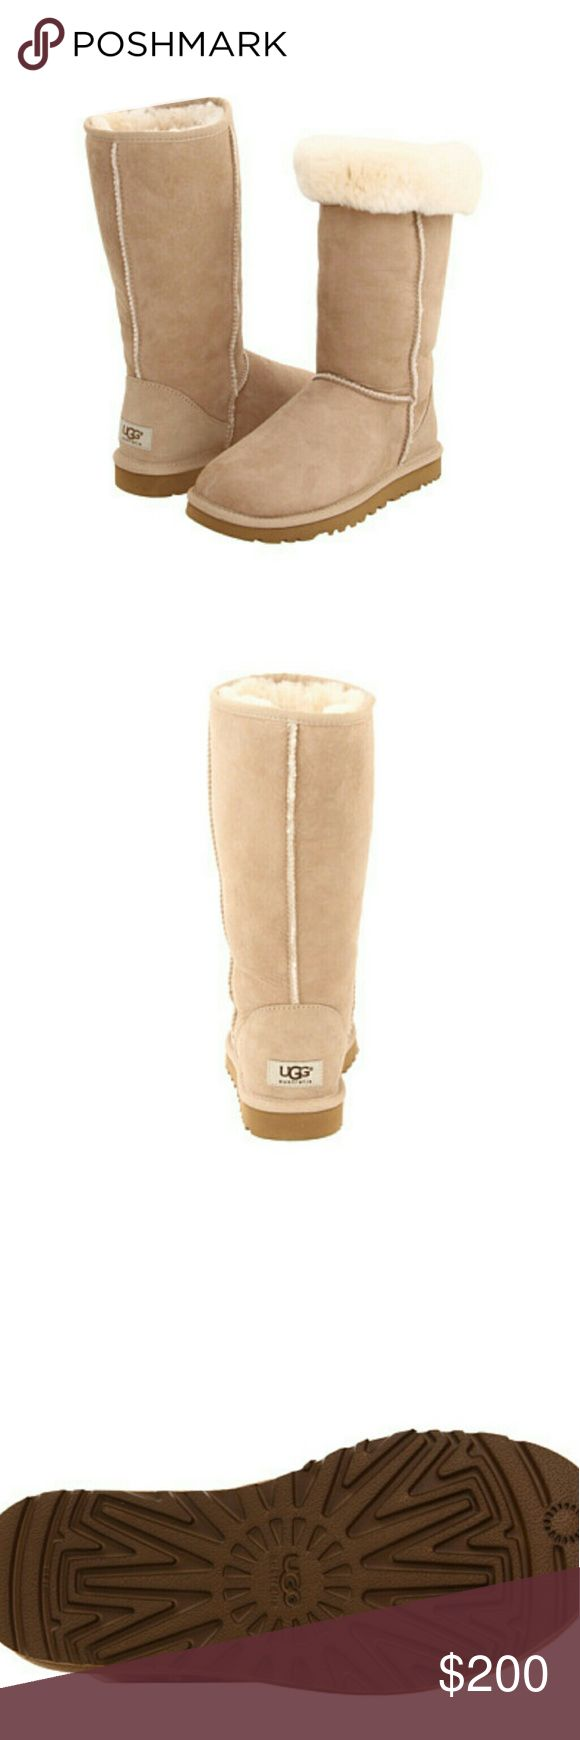 NEW UGG Classic Boots Brand new 100% authentic UGG Australia Sand Classic Tall Boots.  I have two pairs of these, size 5 and 6 women. Both have never been worn.  They come with the original box, wrapping paper and authenticity cards!   If you have any questions please let me know thank you!  tags: boots boot bootie uggs Australia butte warm shoes youth kids 2.5 3 3.5 4 marmot adidas Canada goose Northface nike warm weather 4y 3y gray UGG Shoes Winter & Rain Boots